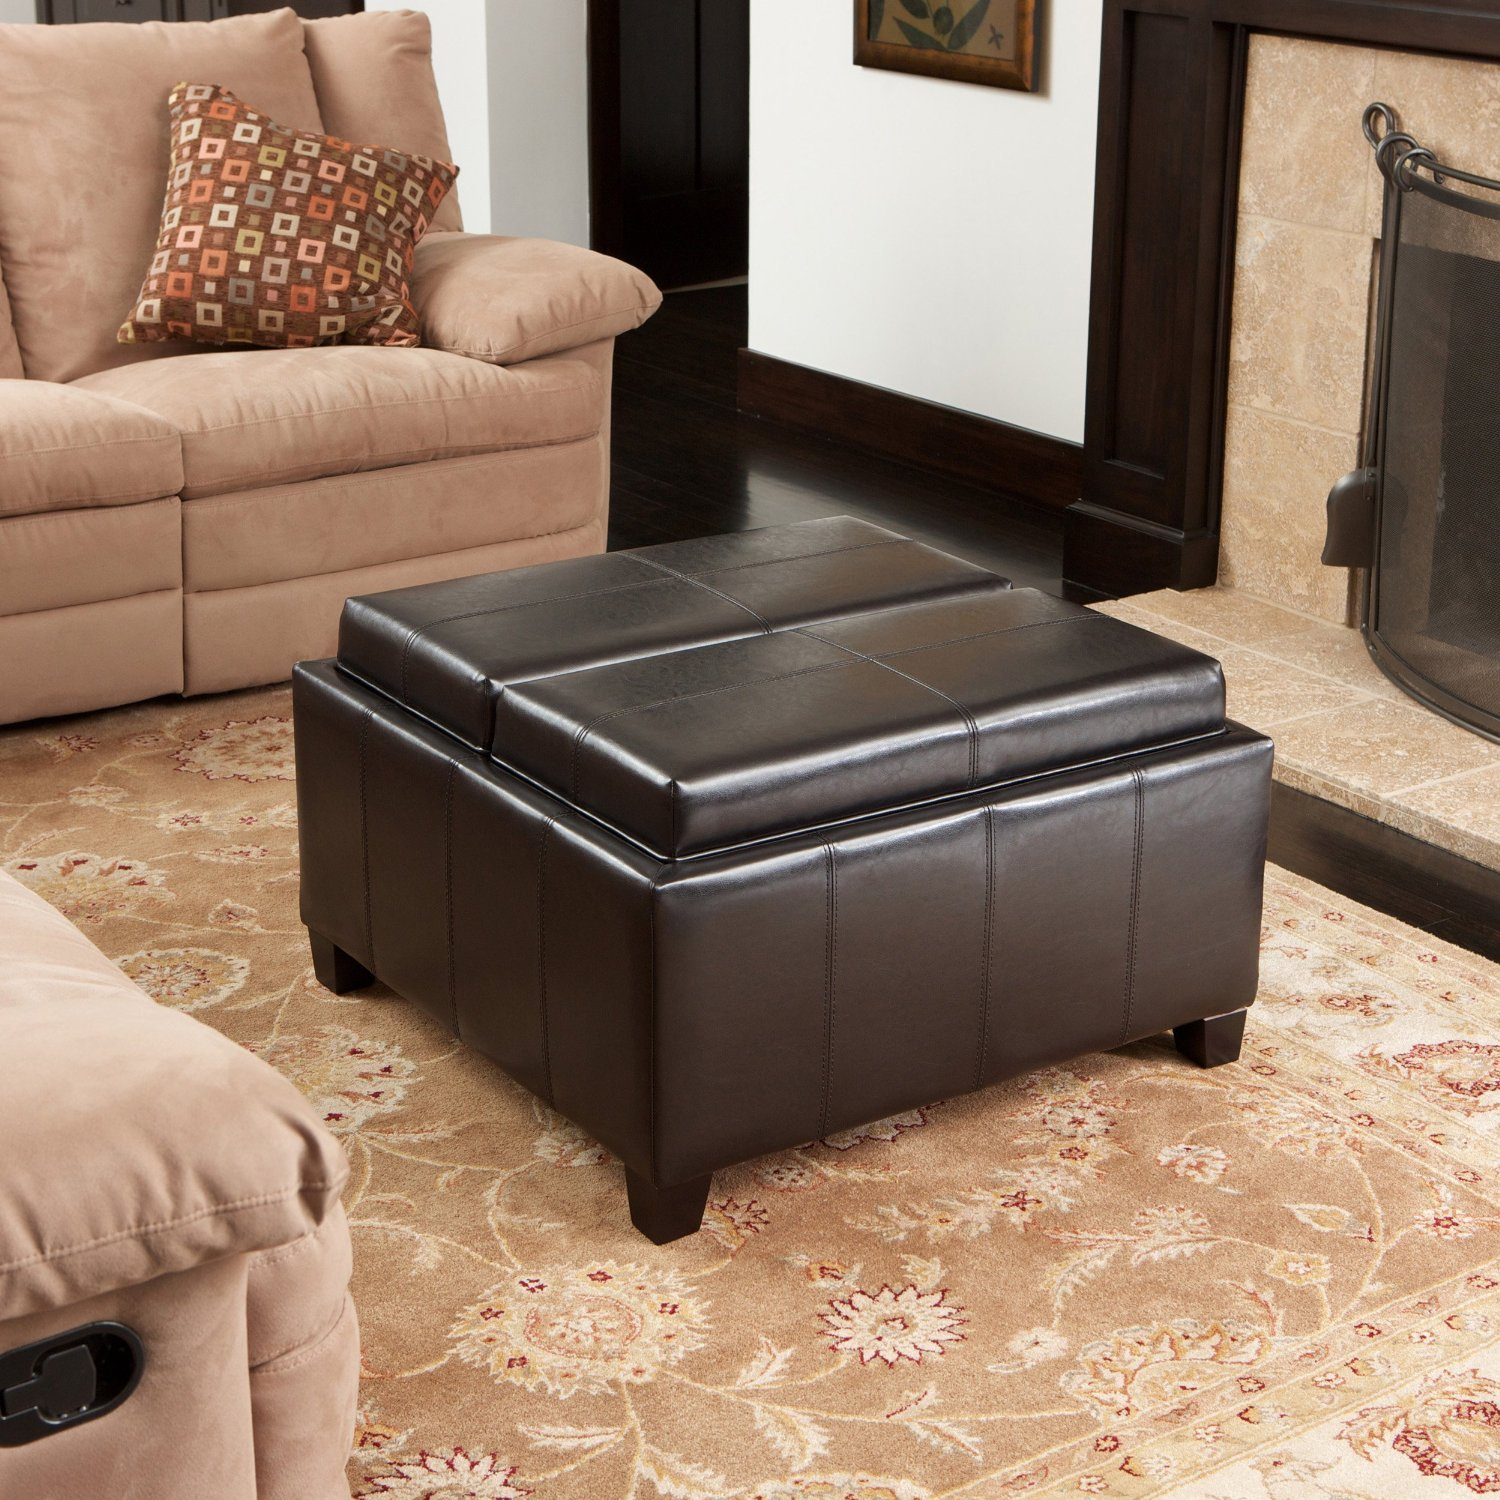 Imtinanz Mansfield Leather Espresso Tray Top Storage Ottoman Two Flip-Over Lids As Serving Trays